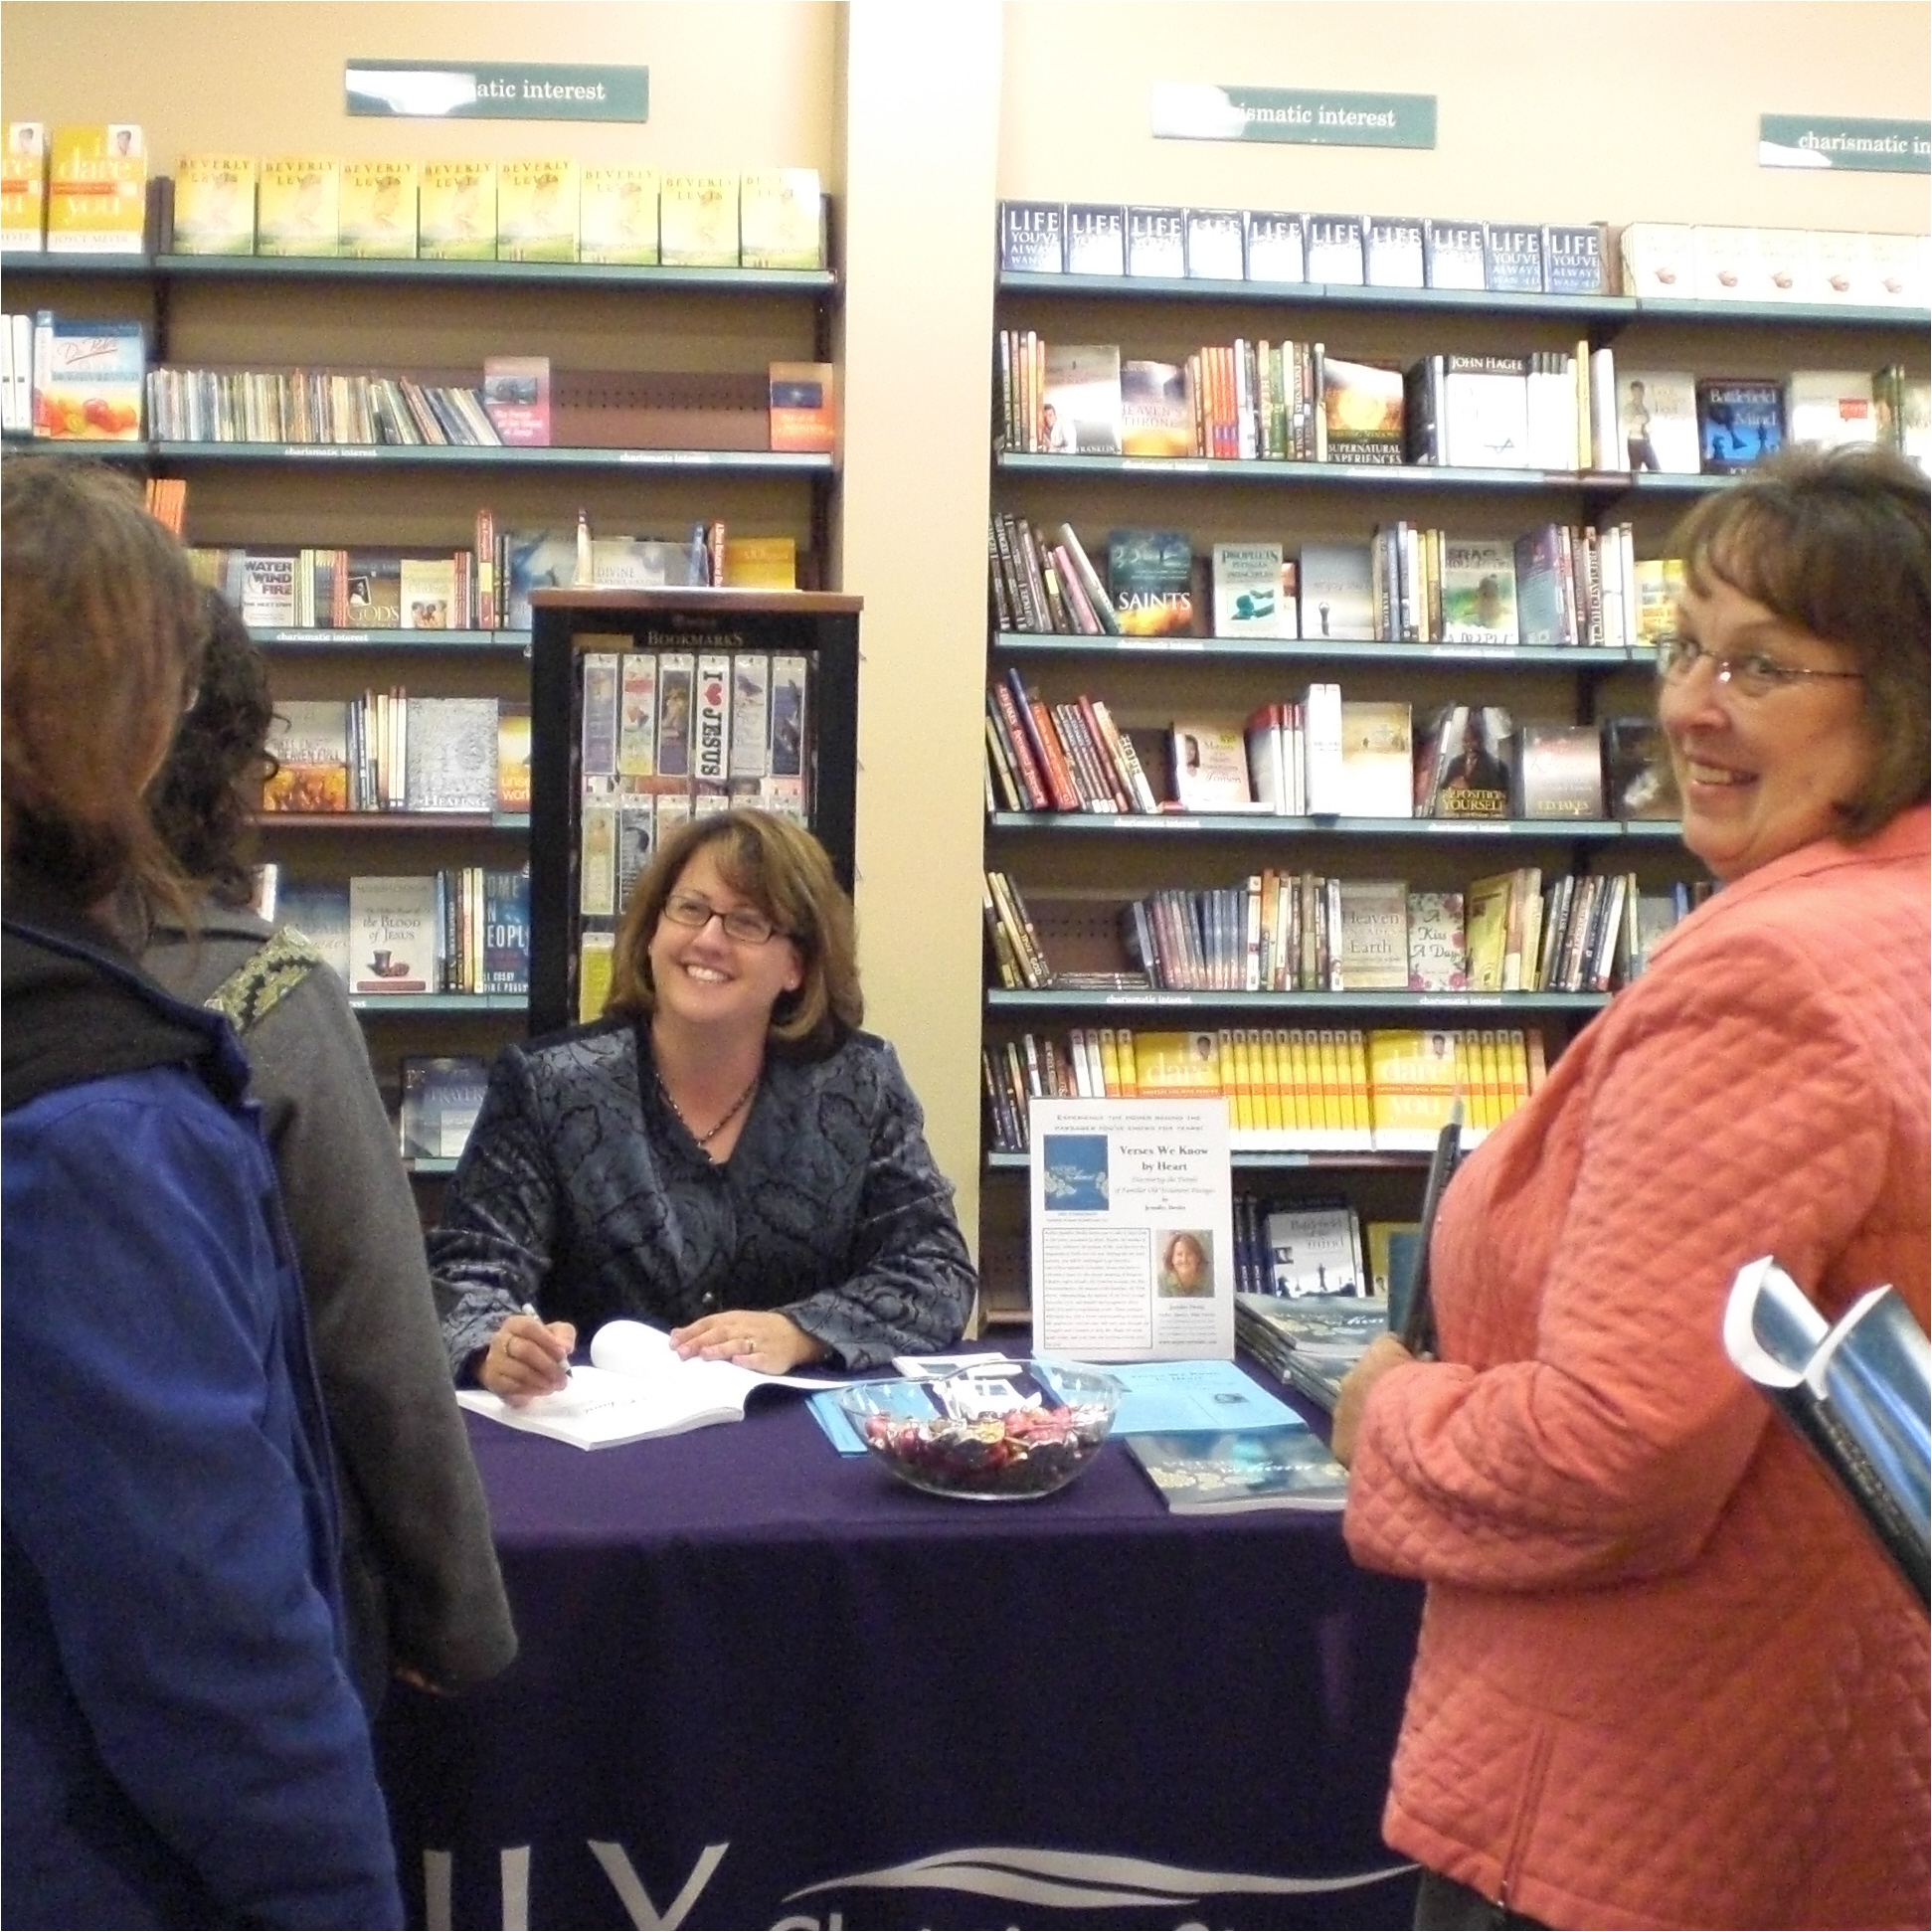 booksigningatfamily2008.jpg